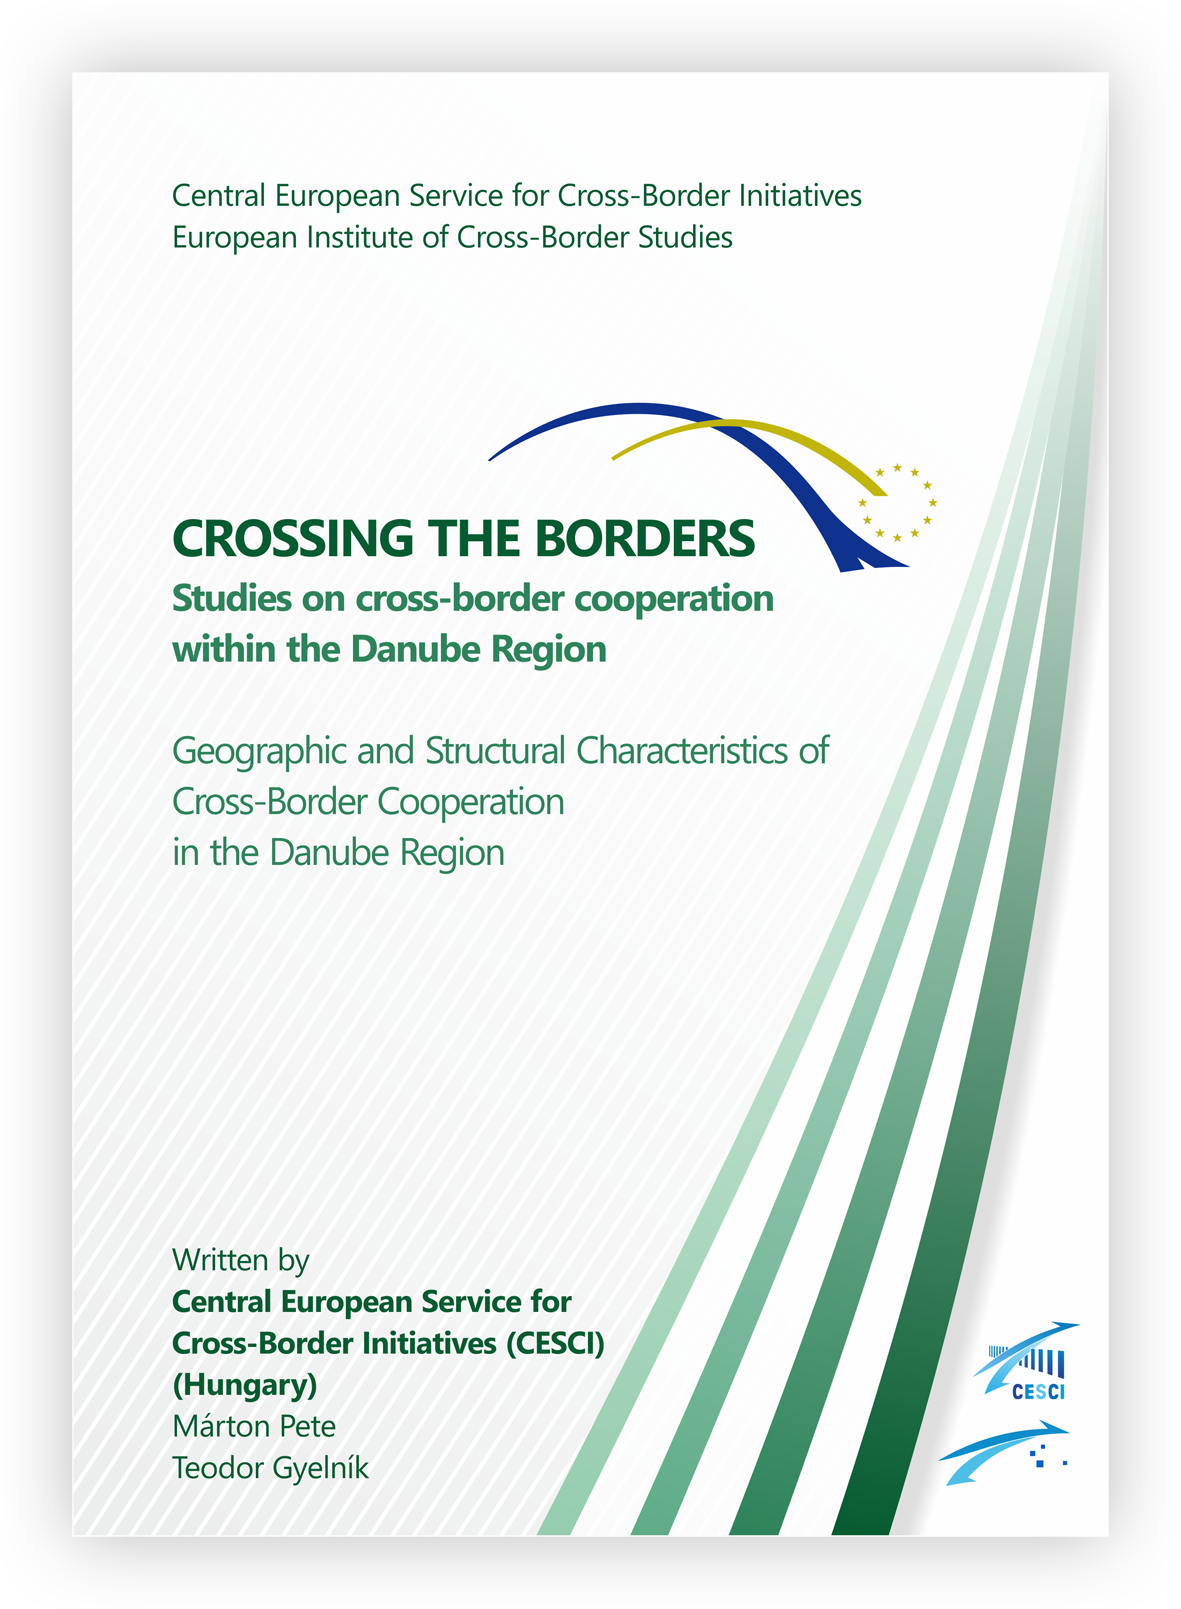 Geographic and Structural Characteristics of Cross-Border Cooperation in the Danube Region